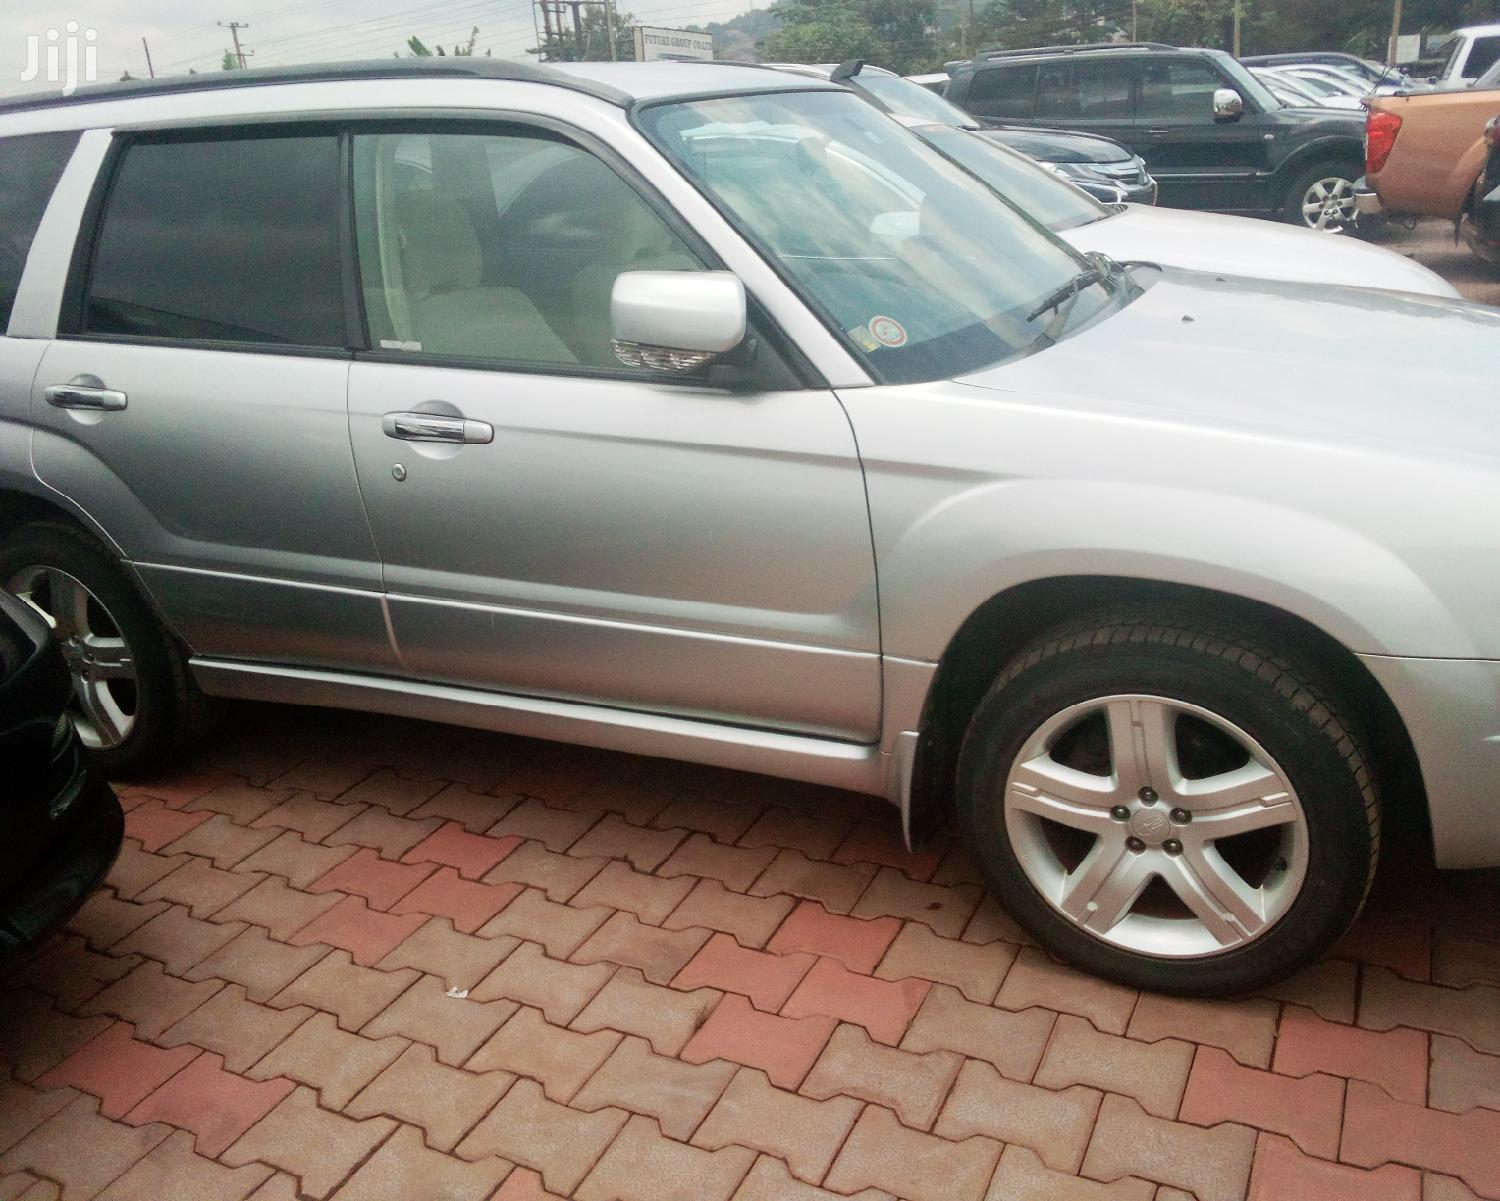 New Subaru Forester 2.0 X Trend 2007 Silver | Cars for sale in Kampala, Central Region, Uganda